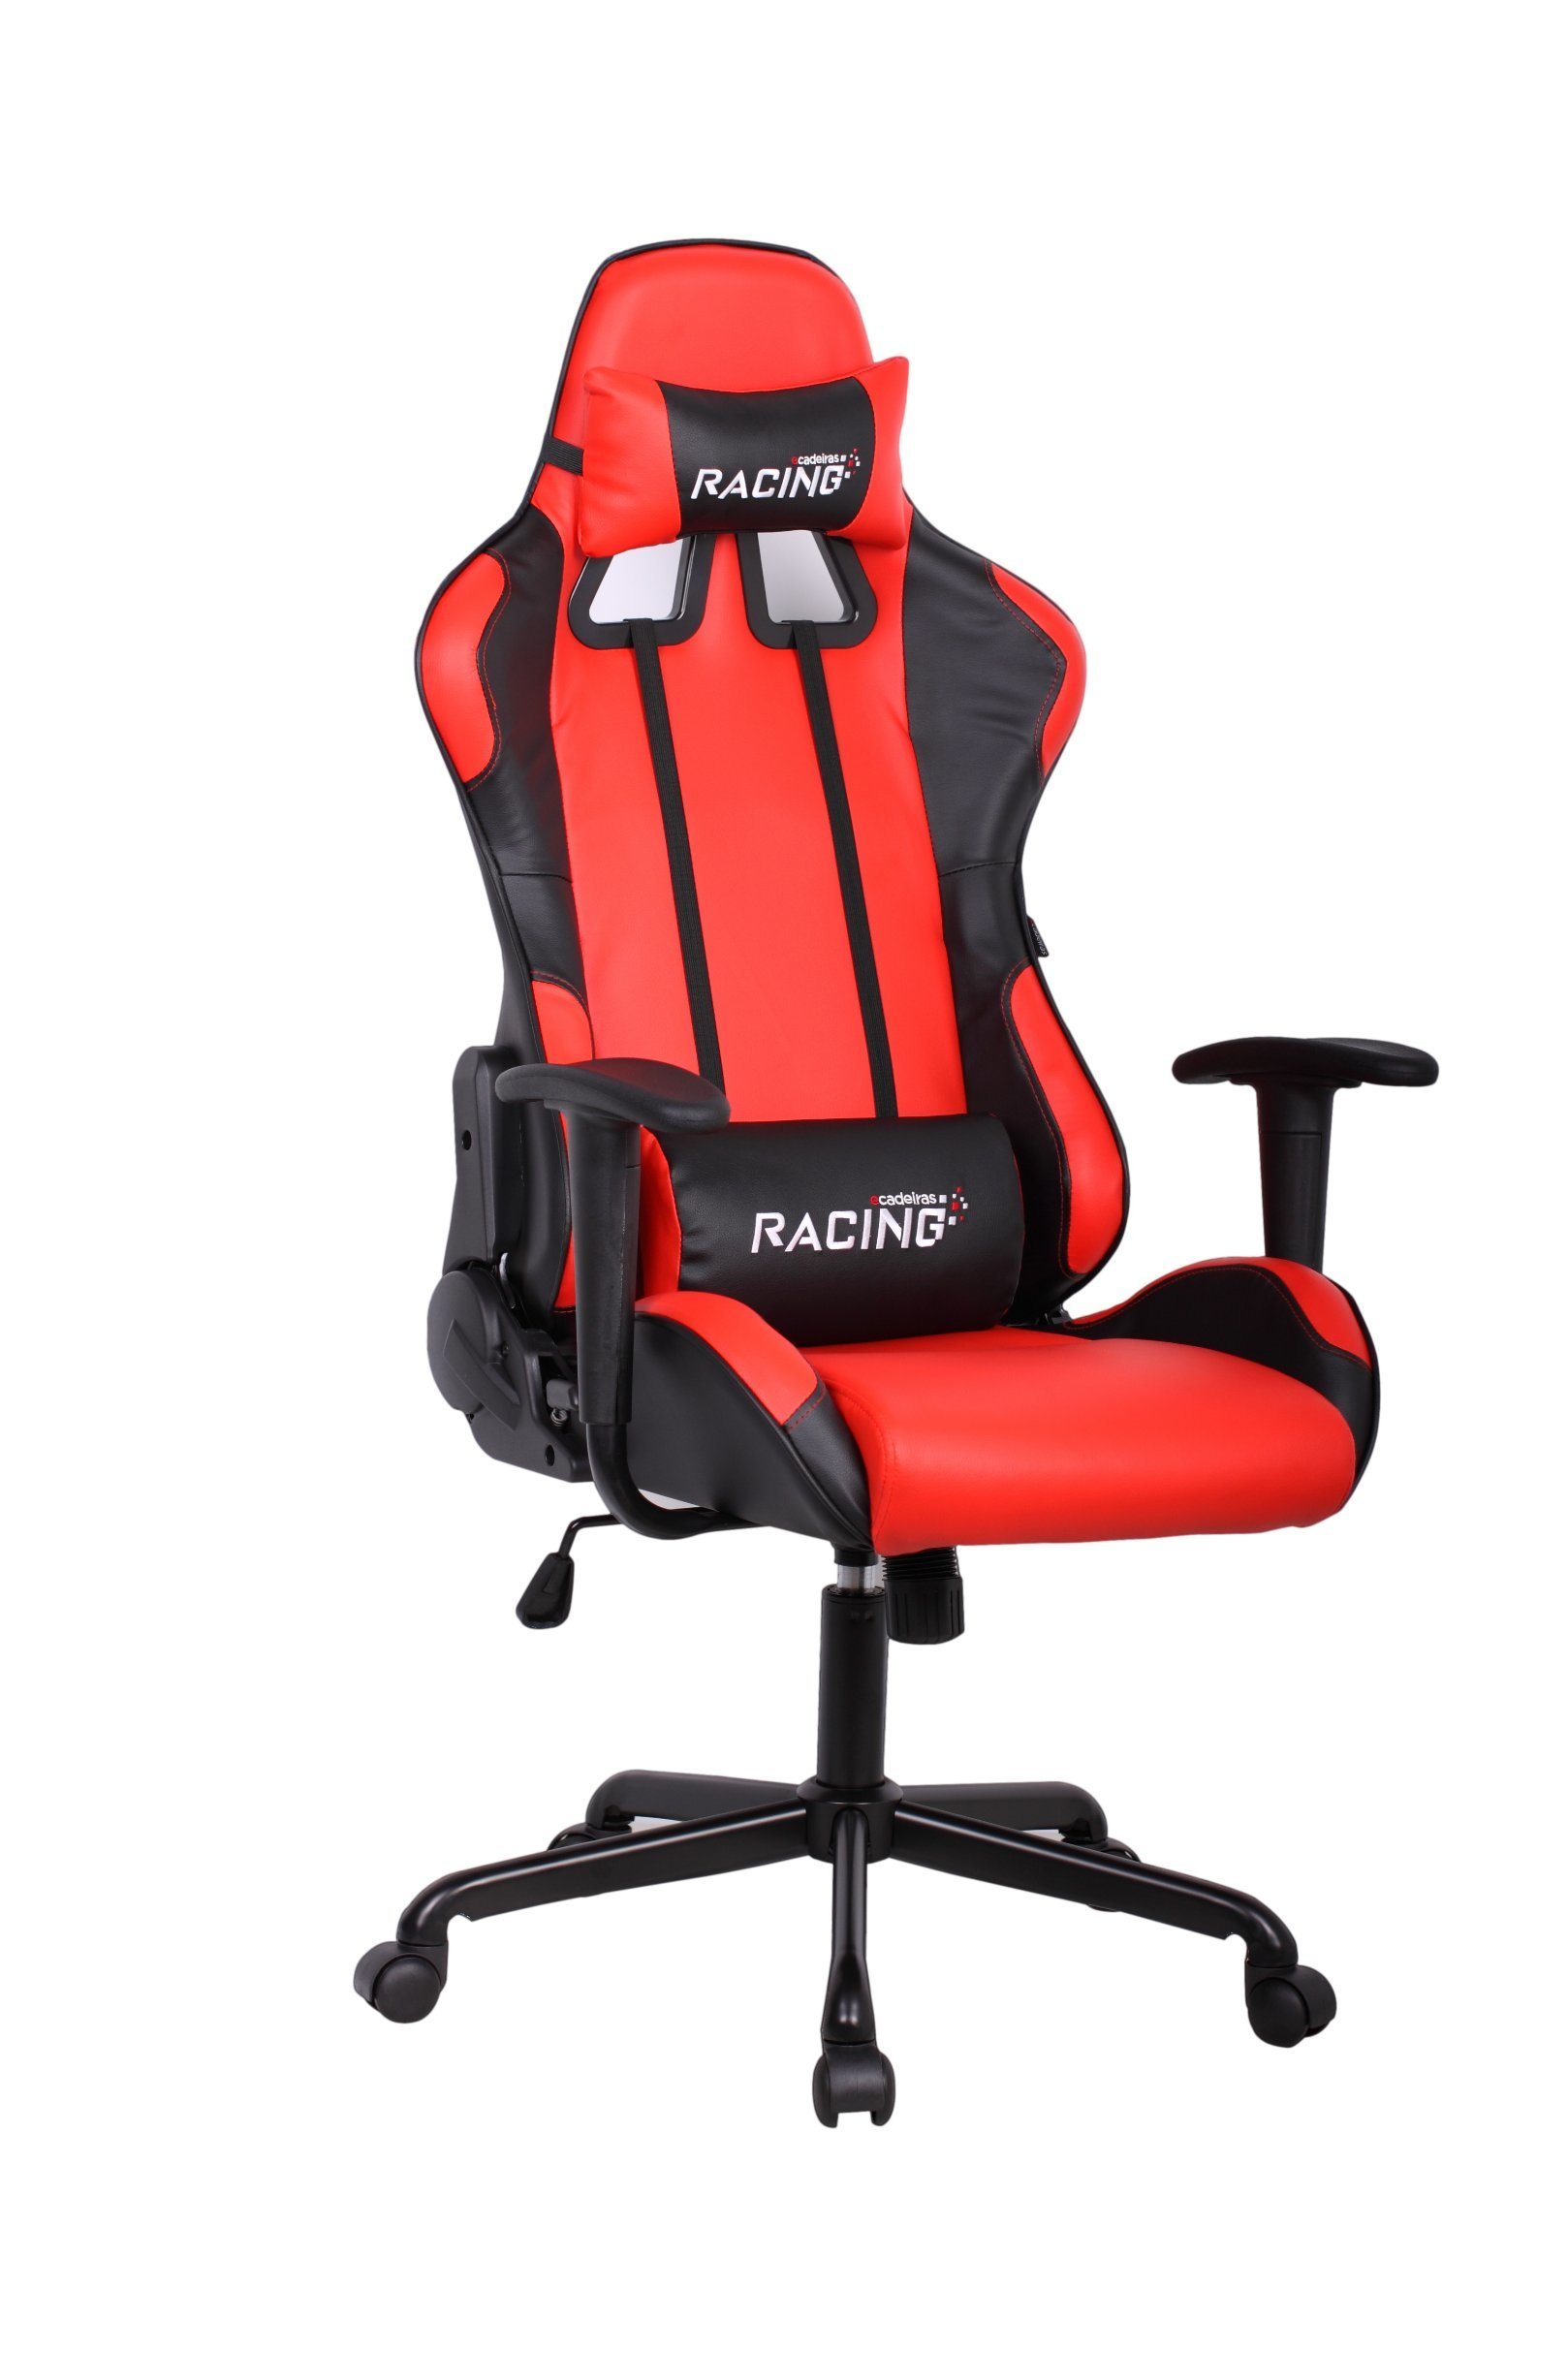 Cool Hot Item Sidanli Video Game Chairs For Kids Video Gaming Chairs Alphanode Cool Chair Designs And Ideas Alphanodeonline